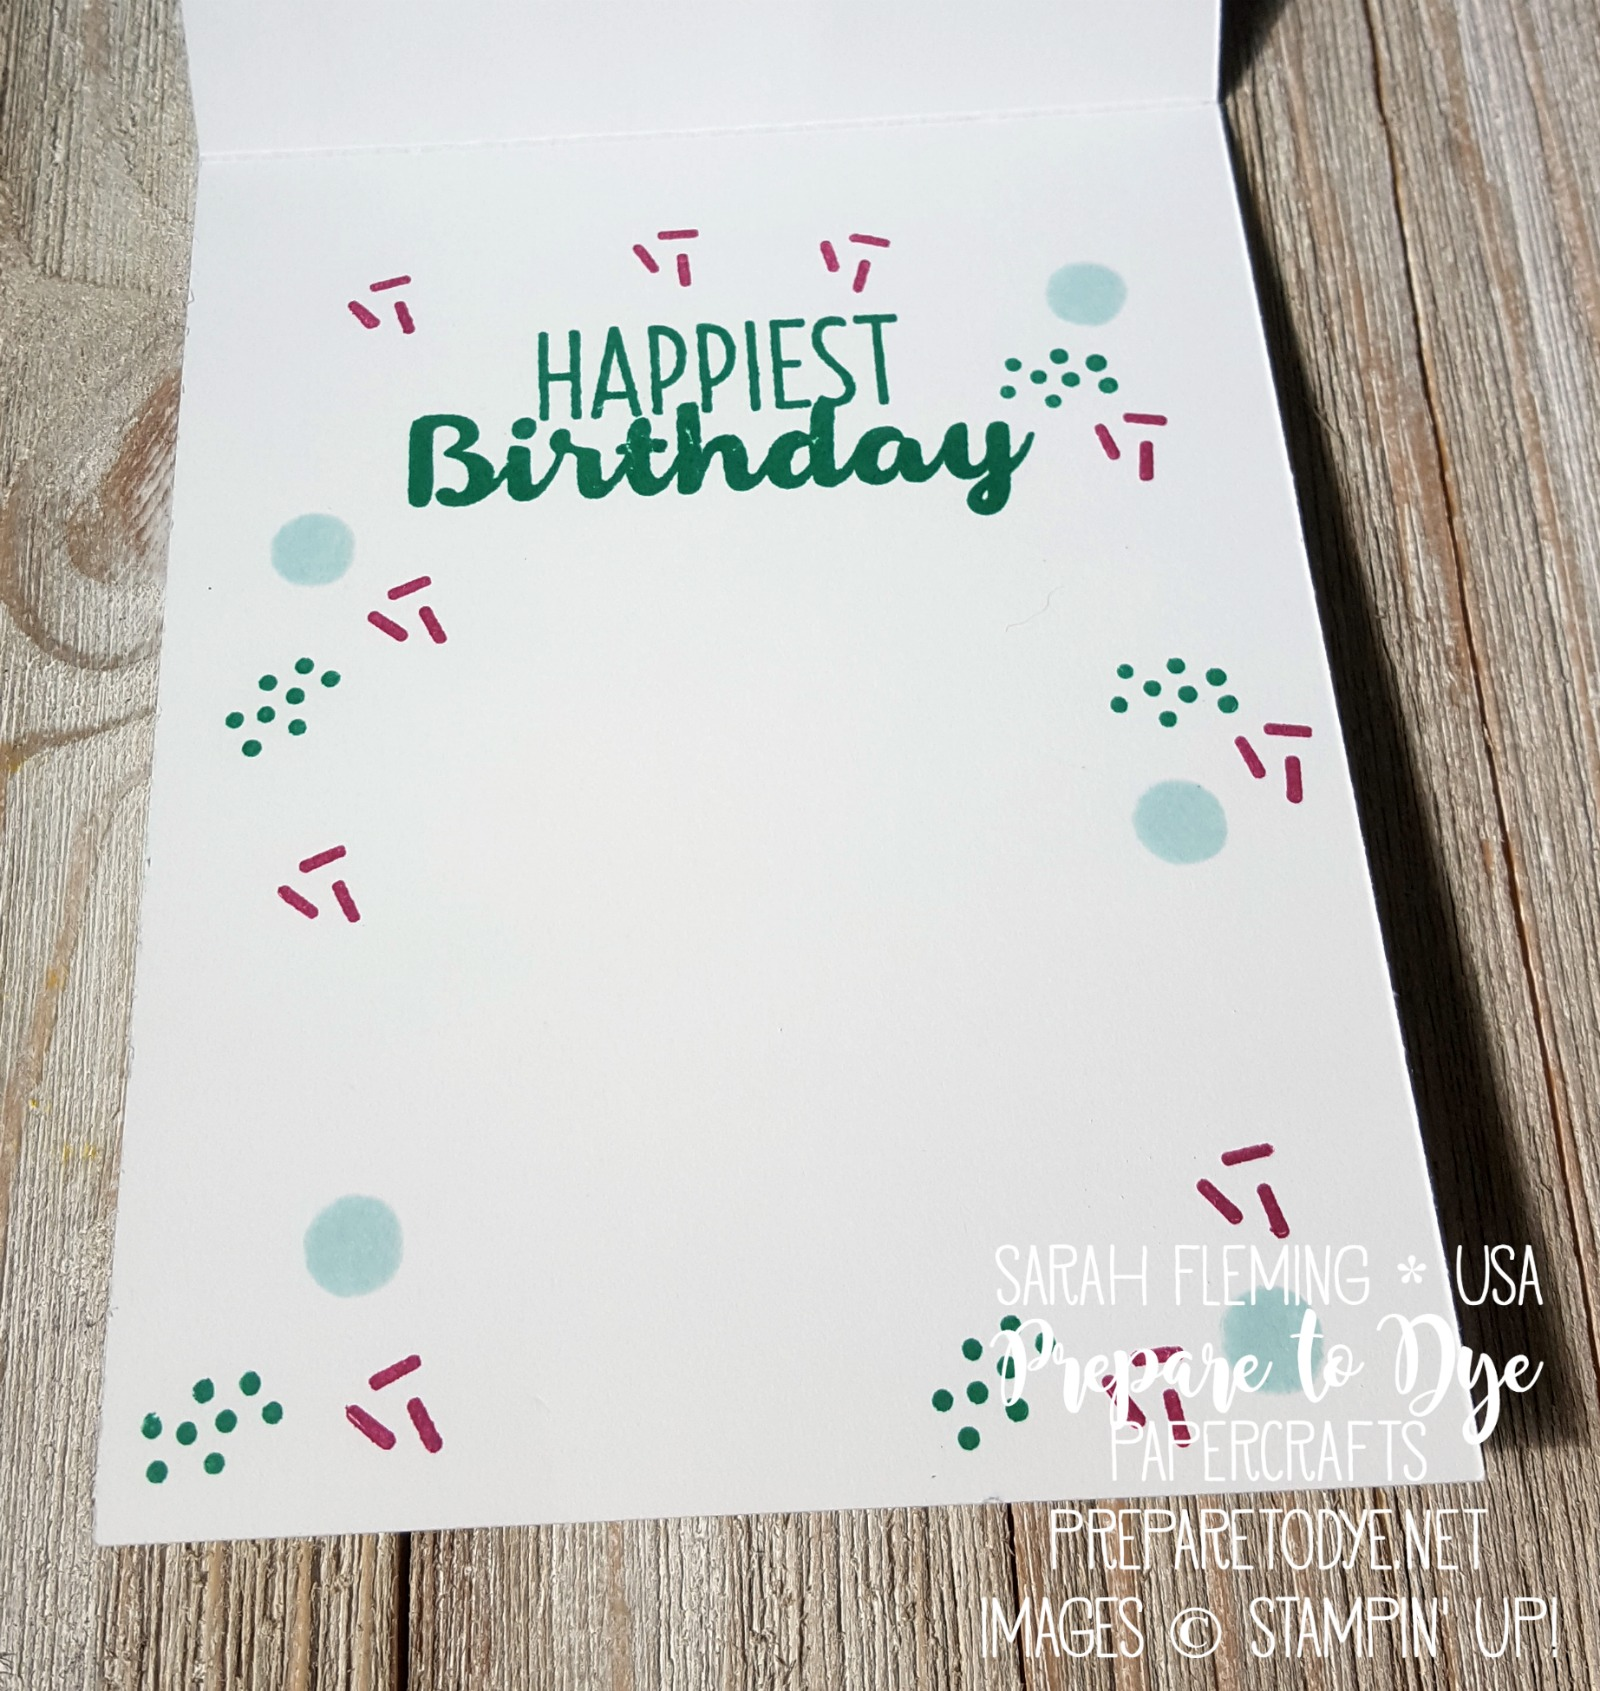 Stampin' Up! Cool Treats & Frozen Treats framelits with Sunshine Sayings & Sunshine Wishes thinlits, glossy cardstock, Ruffled Dynamic embossing folder - Sarah Fleming - Prepare to Dye Papercrafts